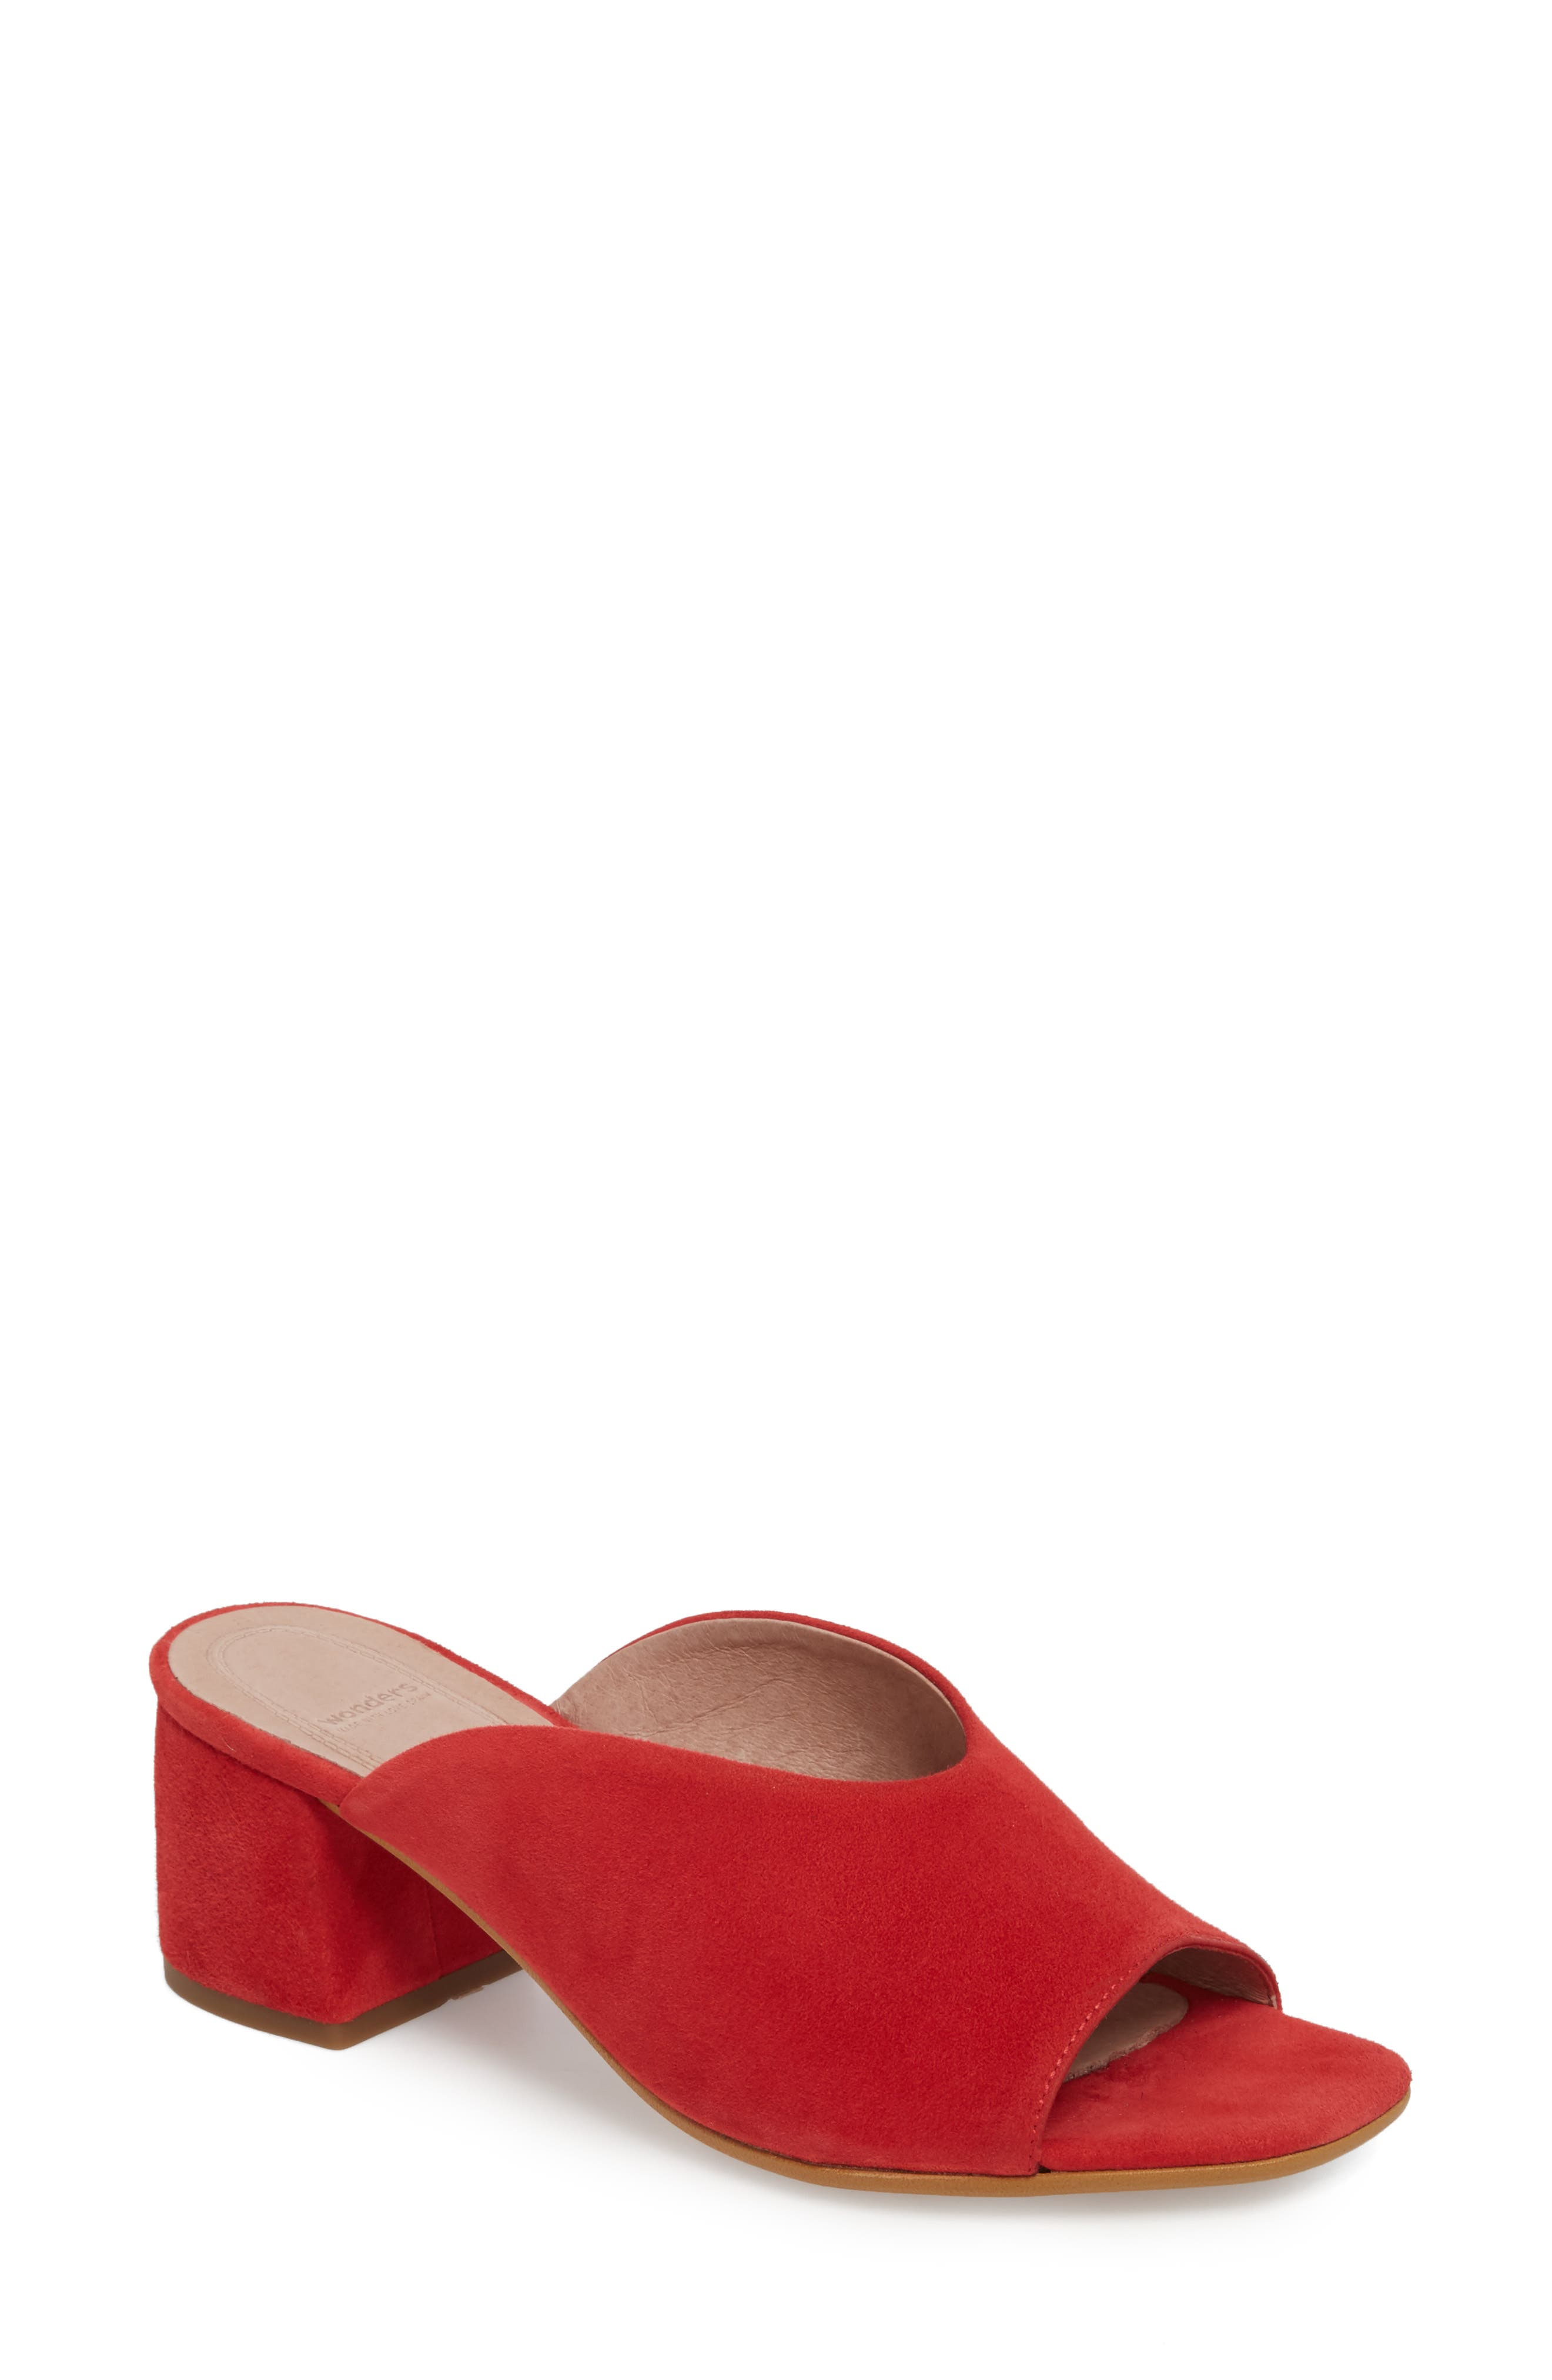 F-6127 Mule,                         Main,                         color, Red Suede